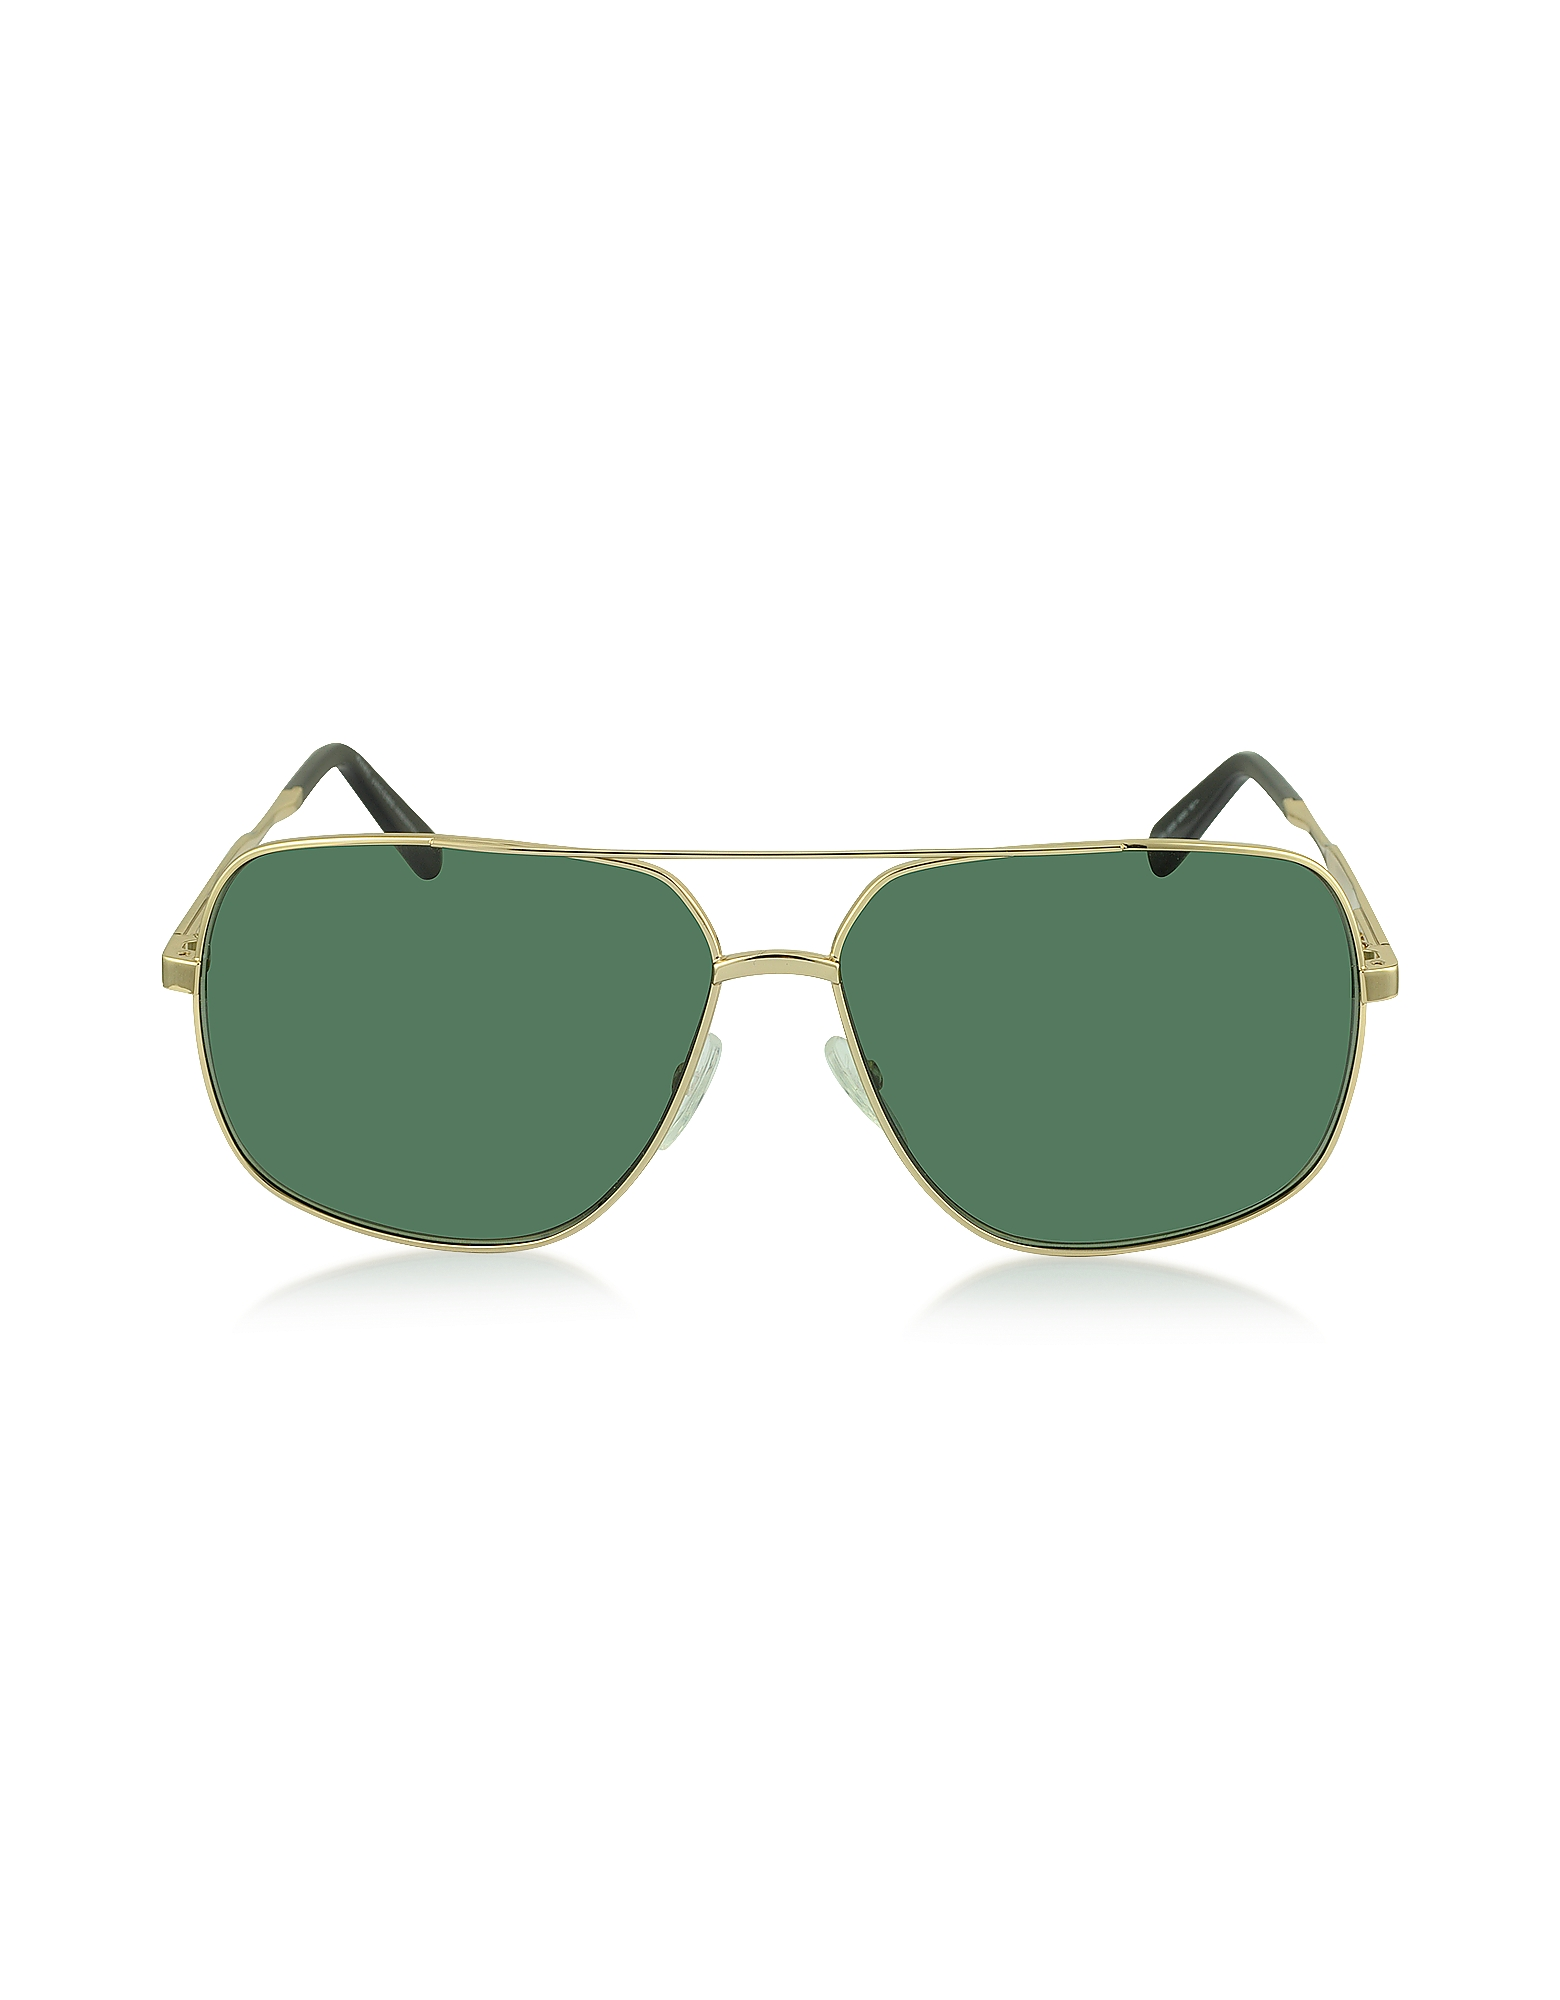 Marc Jacobs Designer Sunglasses, MJ 594 / S Metal Aviator Sunglasses